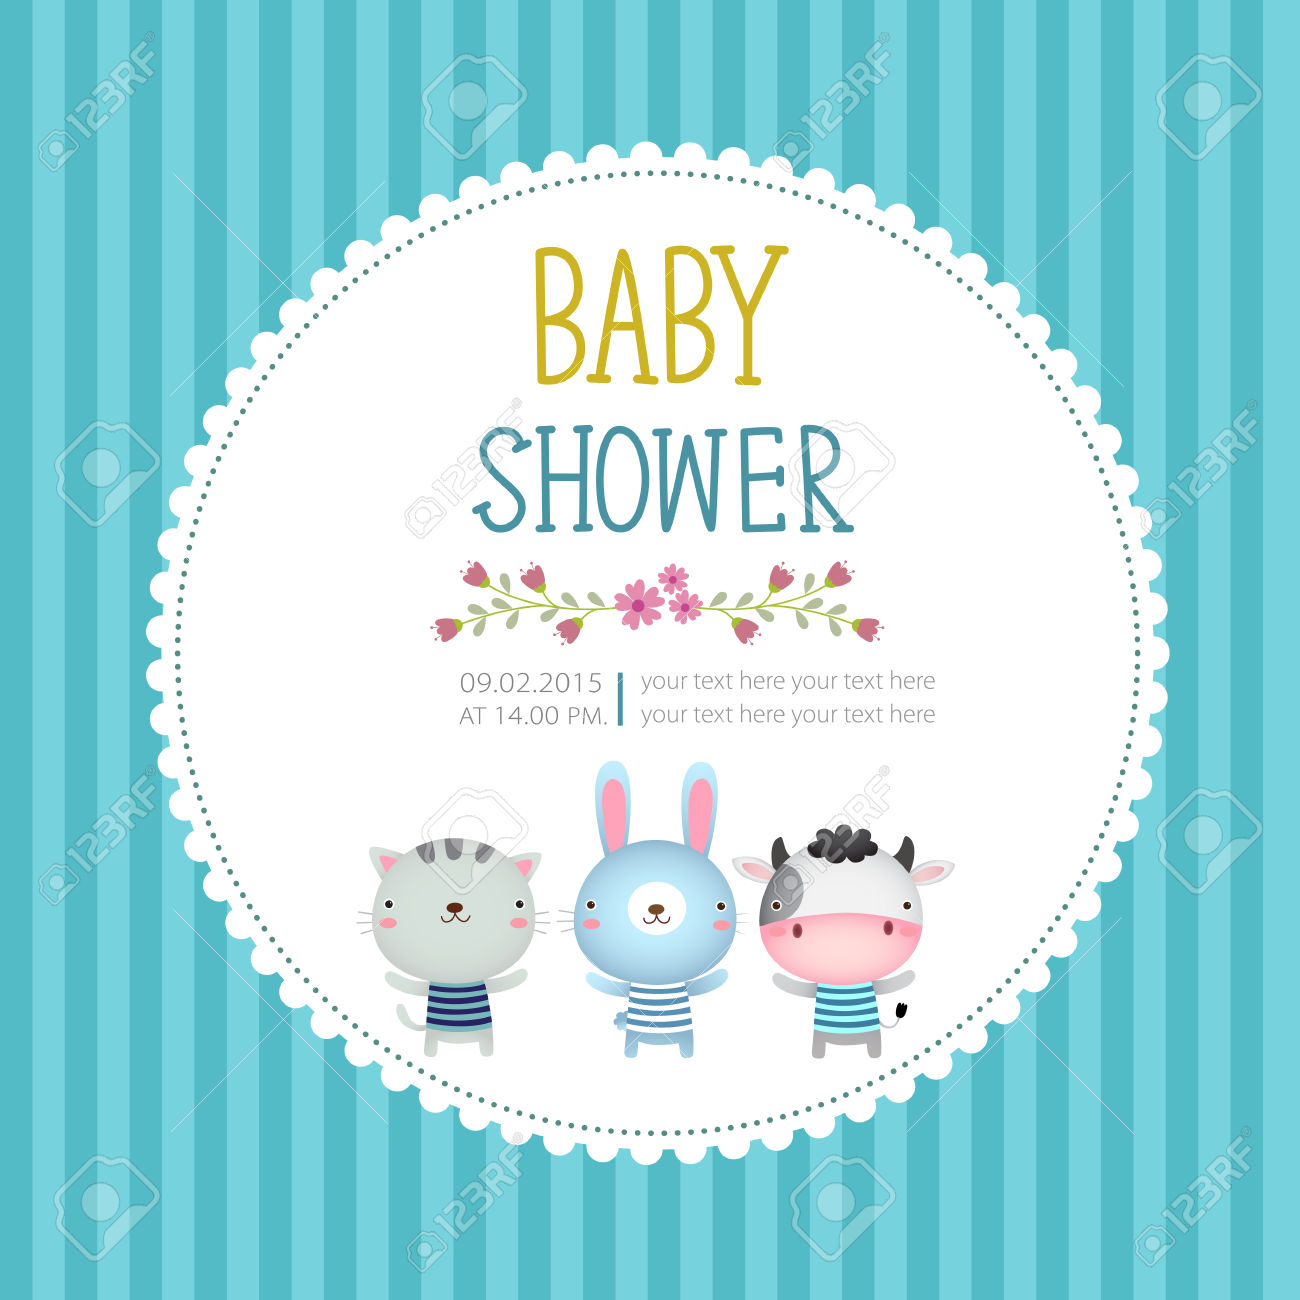 835 Shower Time Cliparts, Stock Vector And Royalty Free Shower.